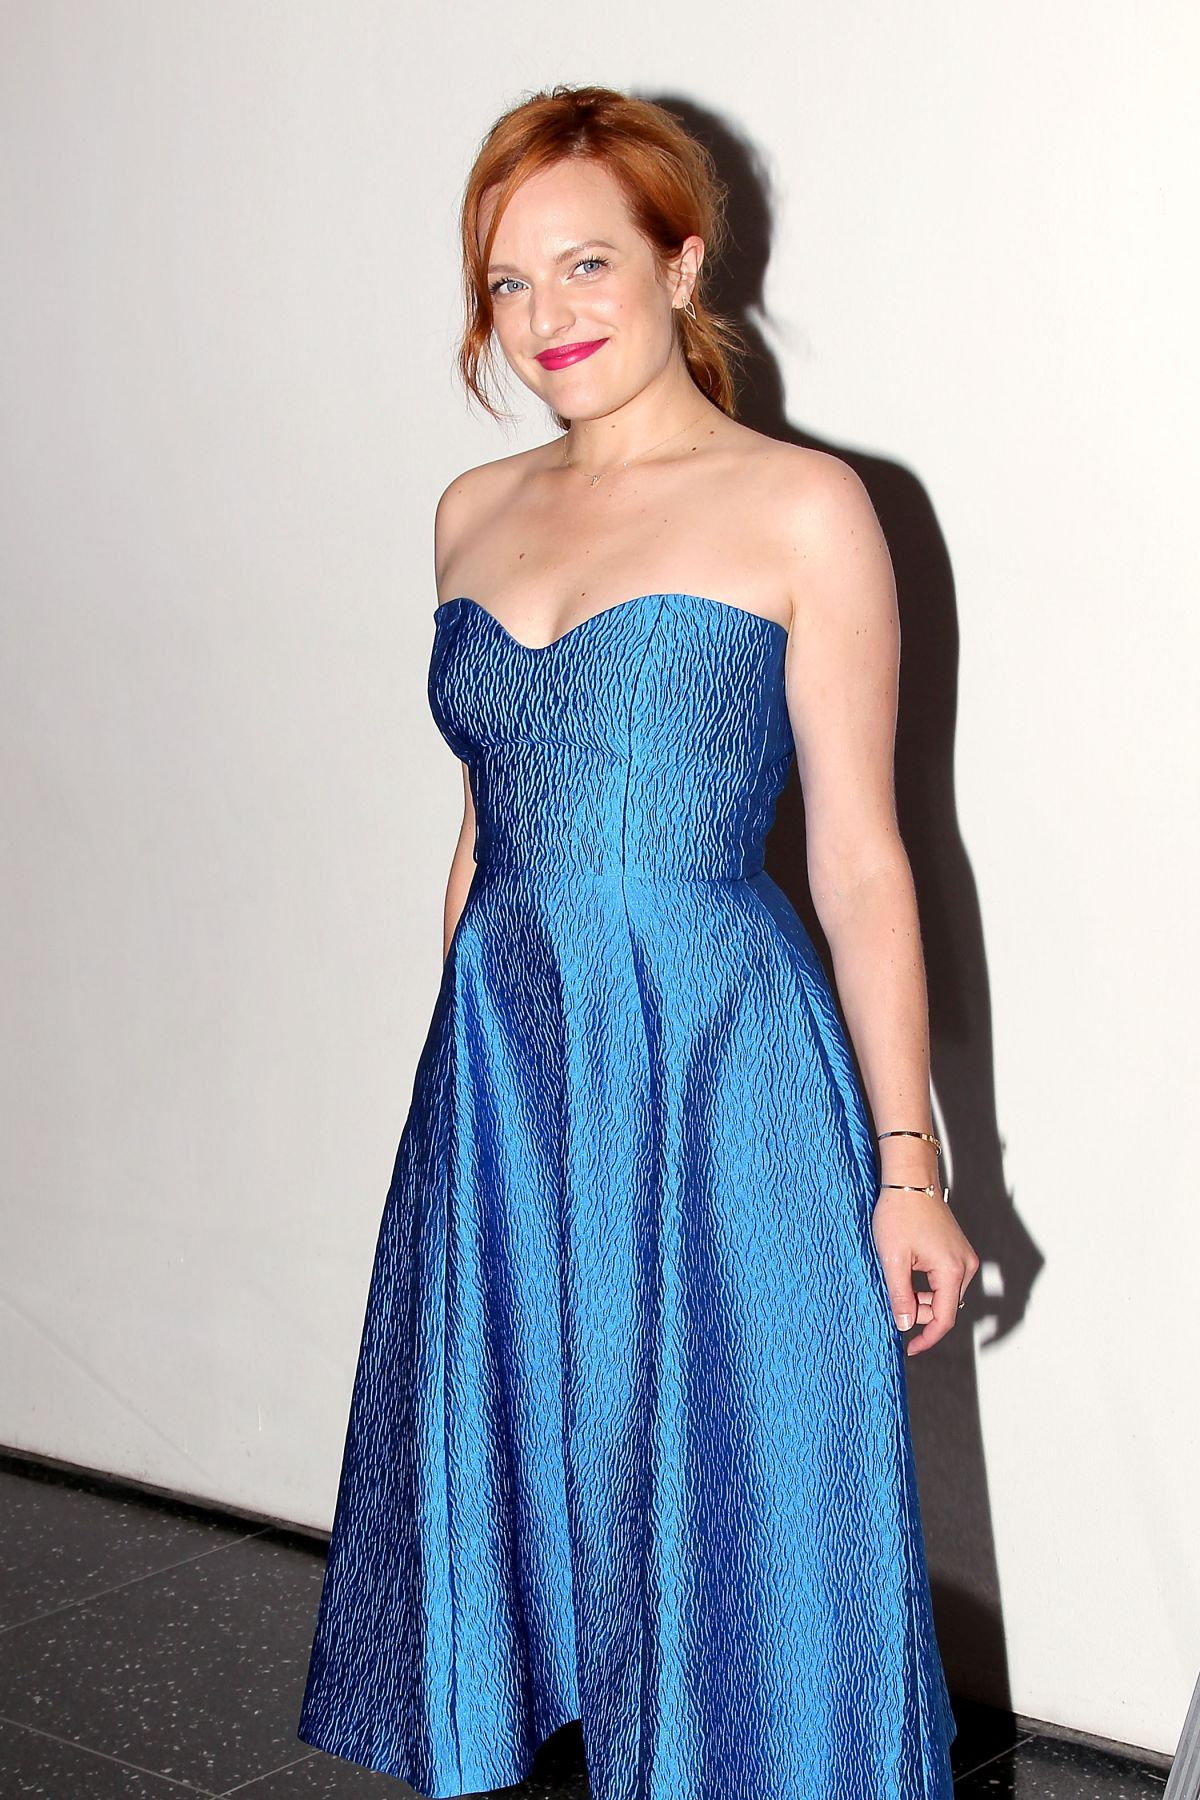 elisabeth-moss-at-queen-of-earth-premiere-in-new-york_1